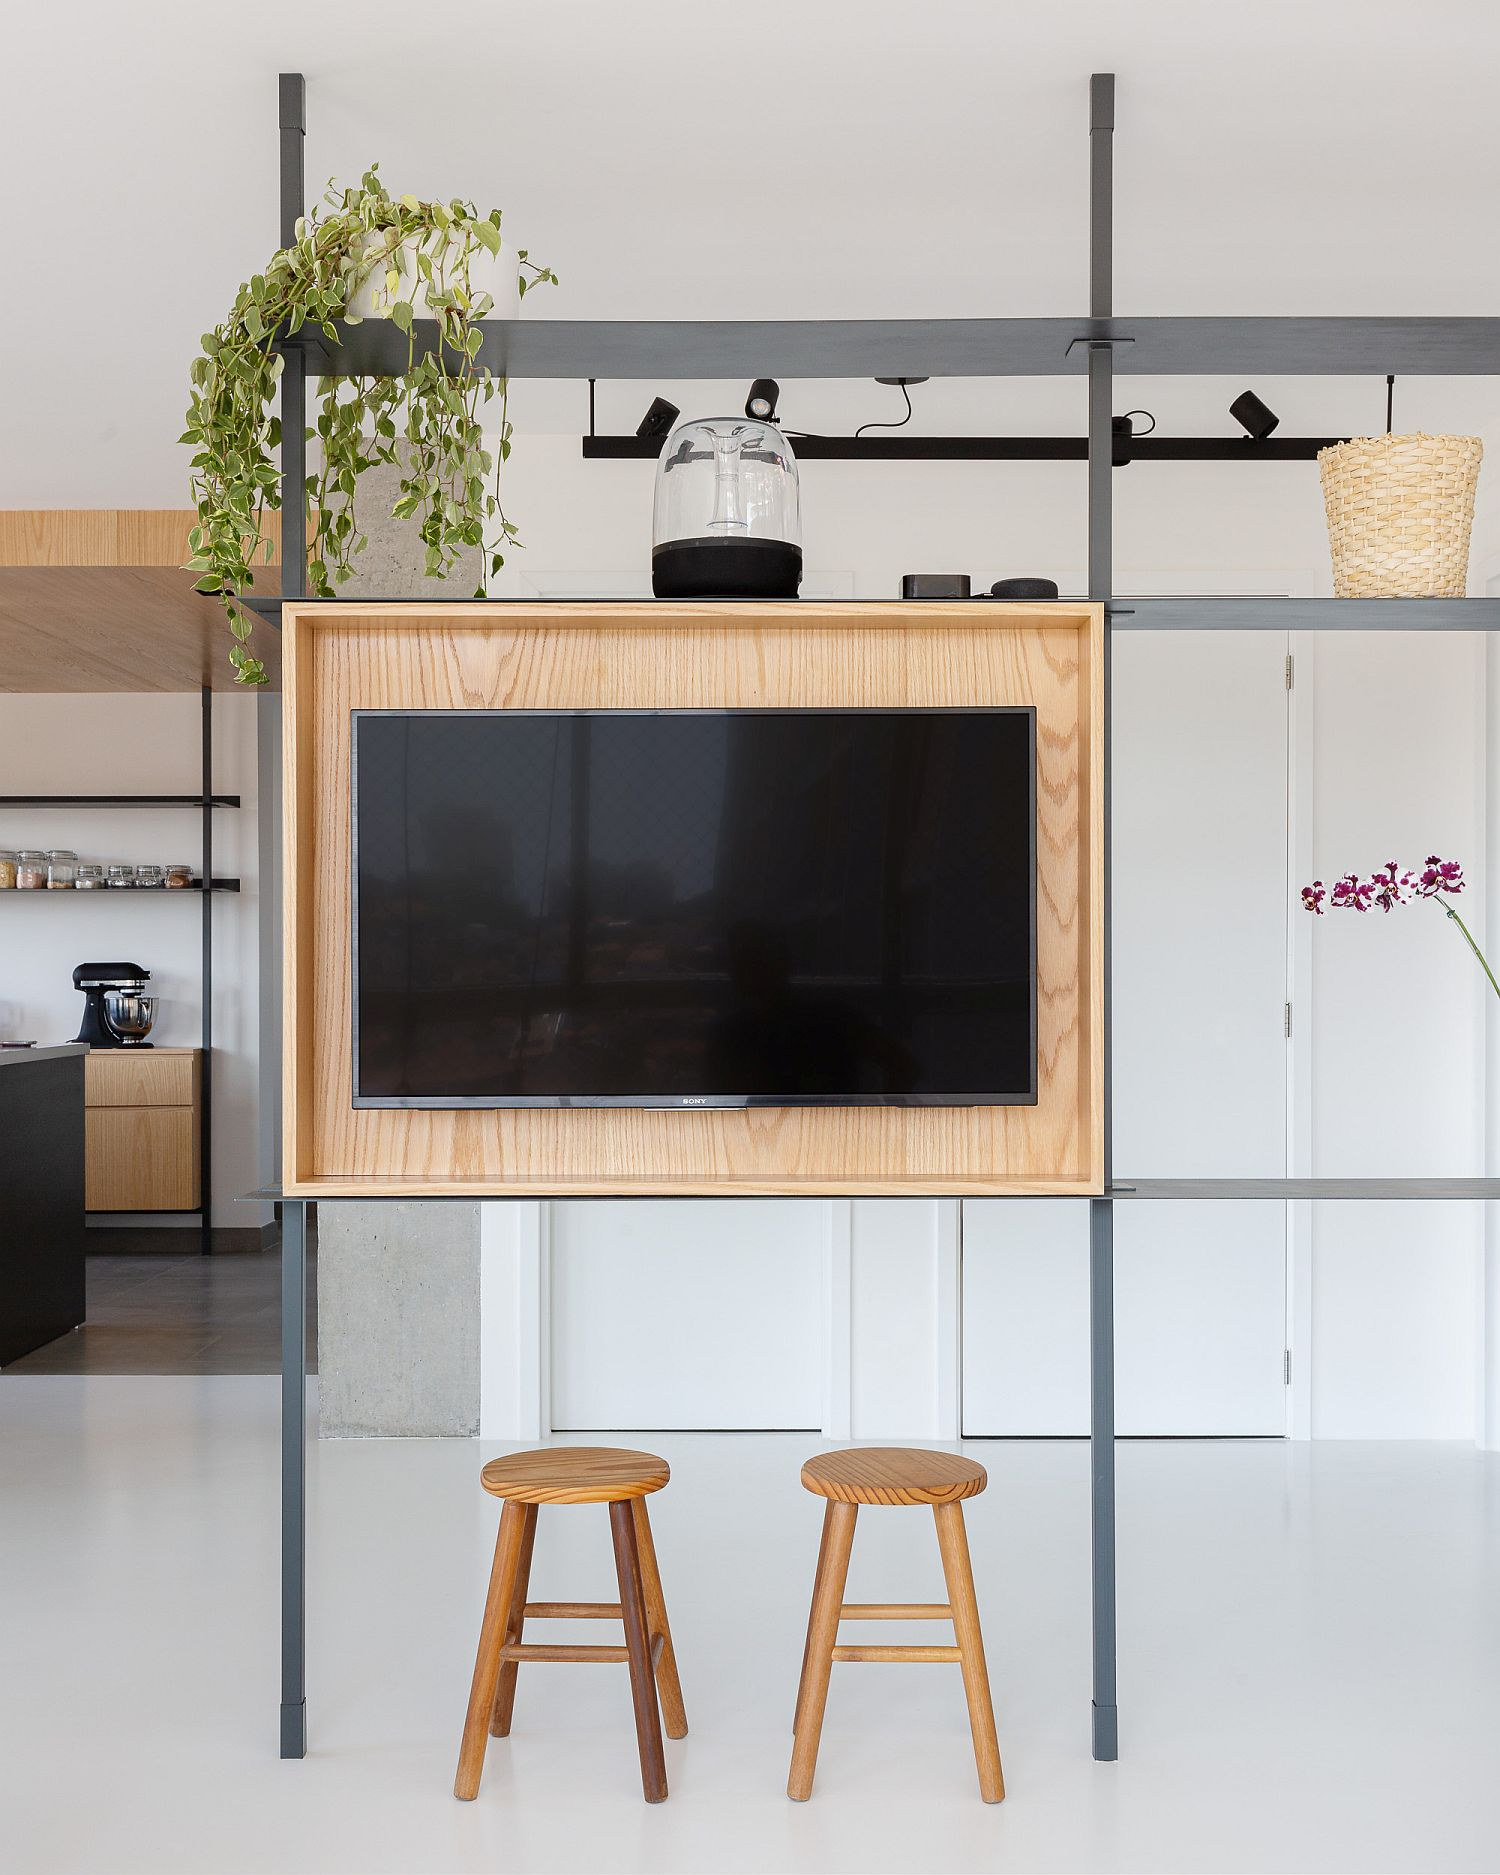 Minimal and modern room divider with TV stand and a simple, elegant frame